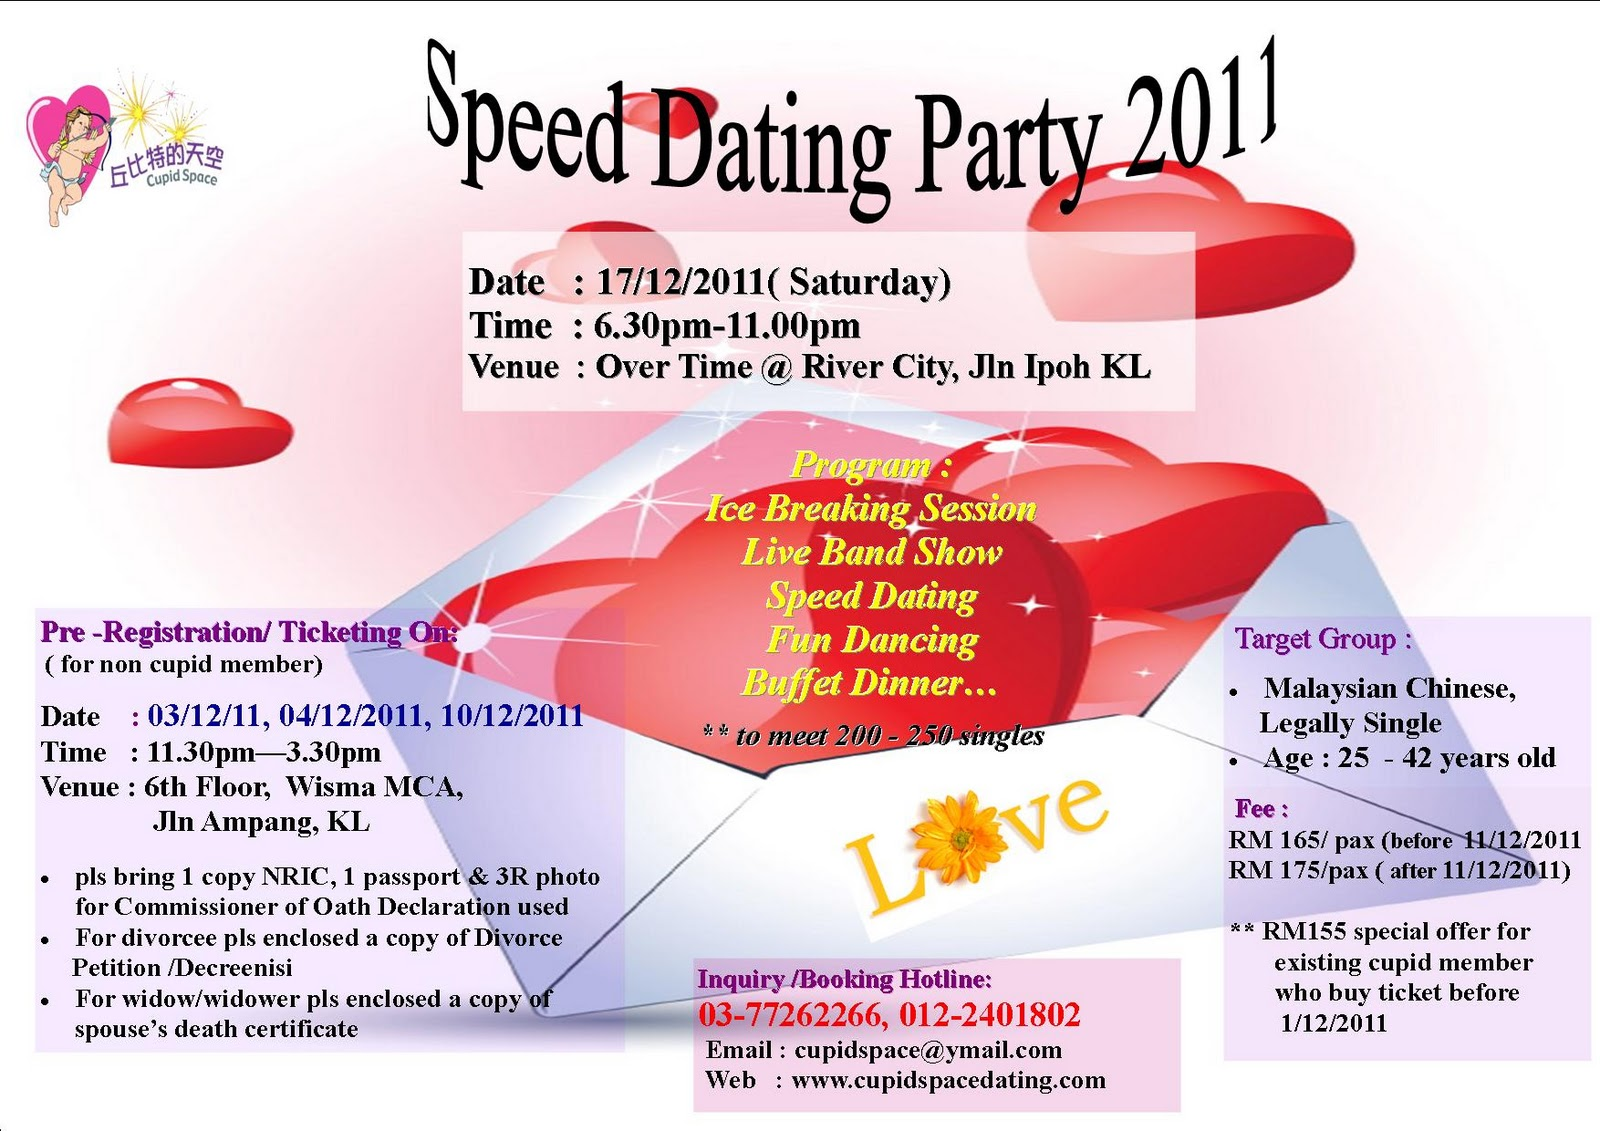 from Allen speed dating flyers